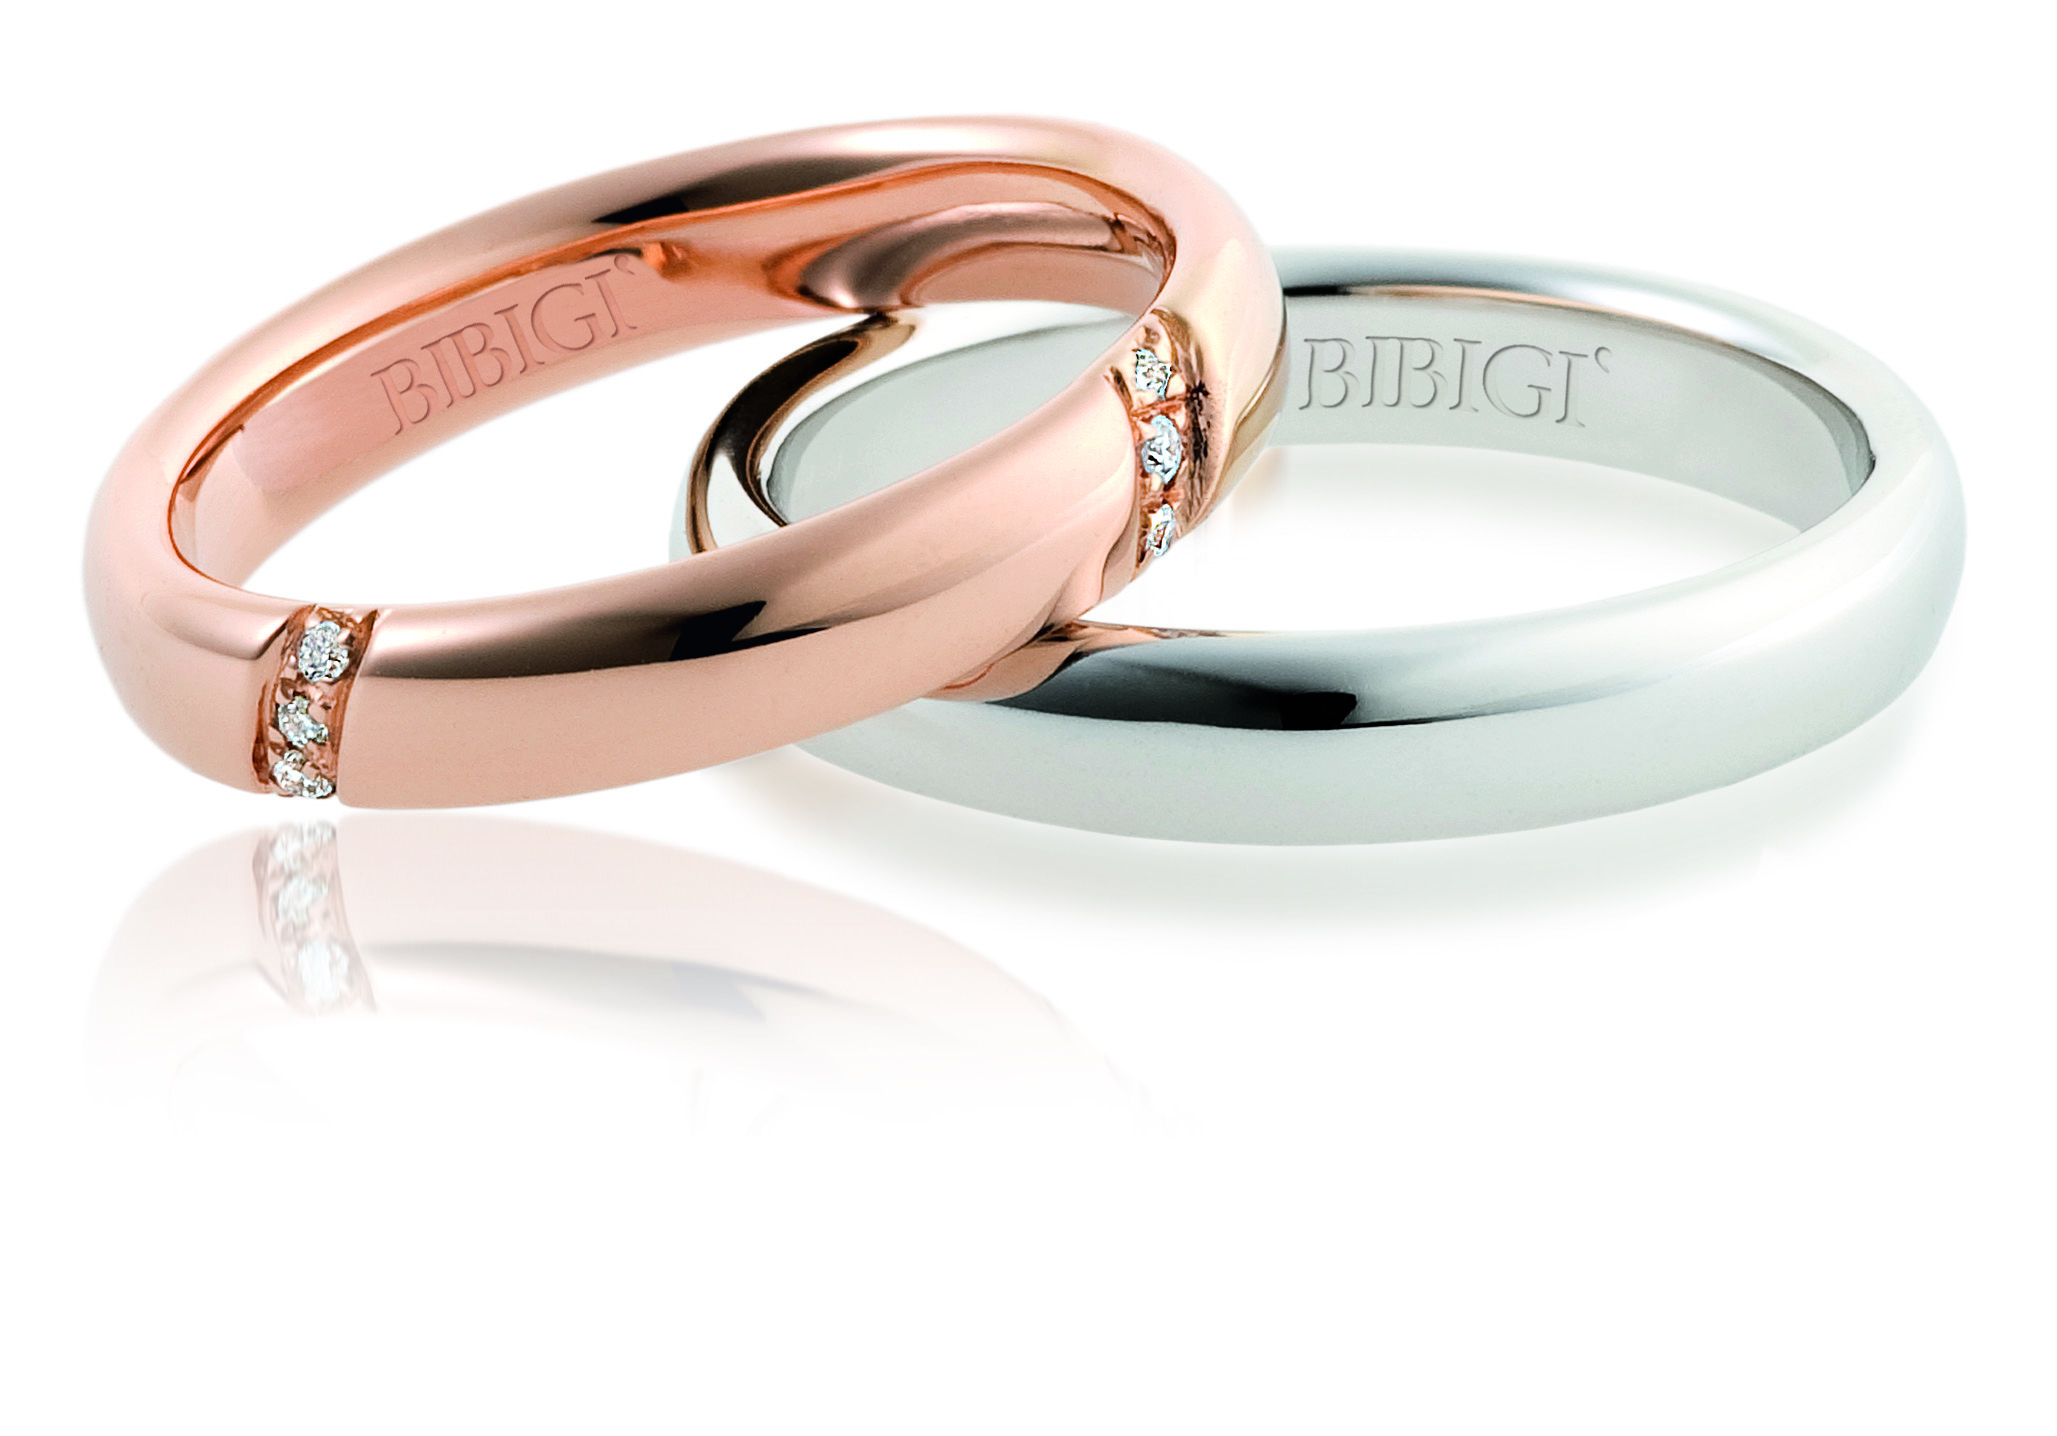 bibigi wedding rings 5-1